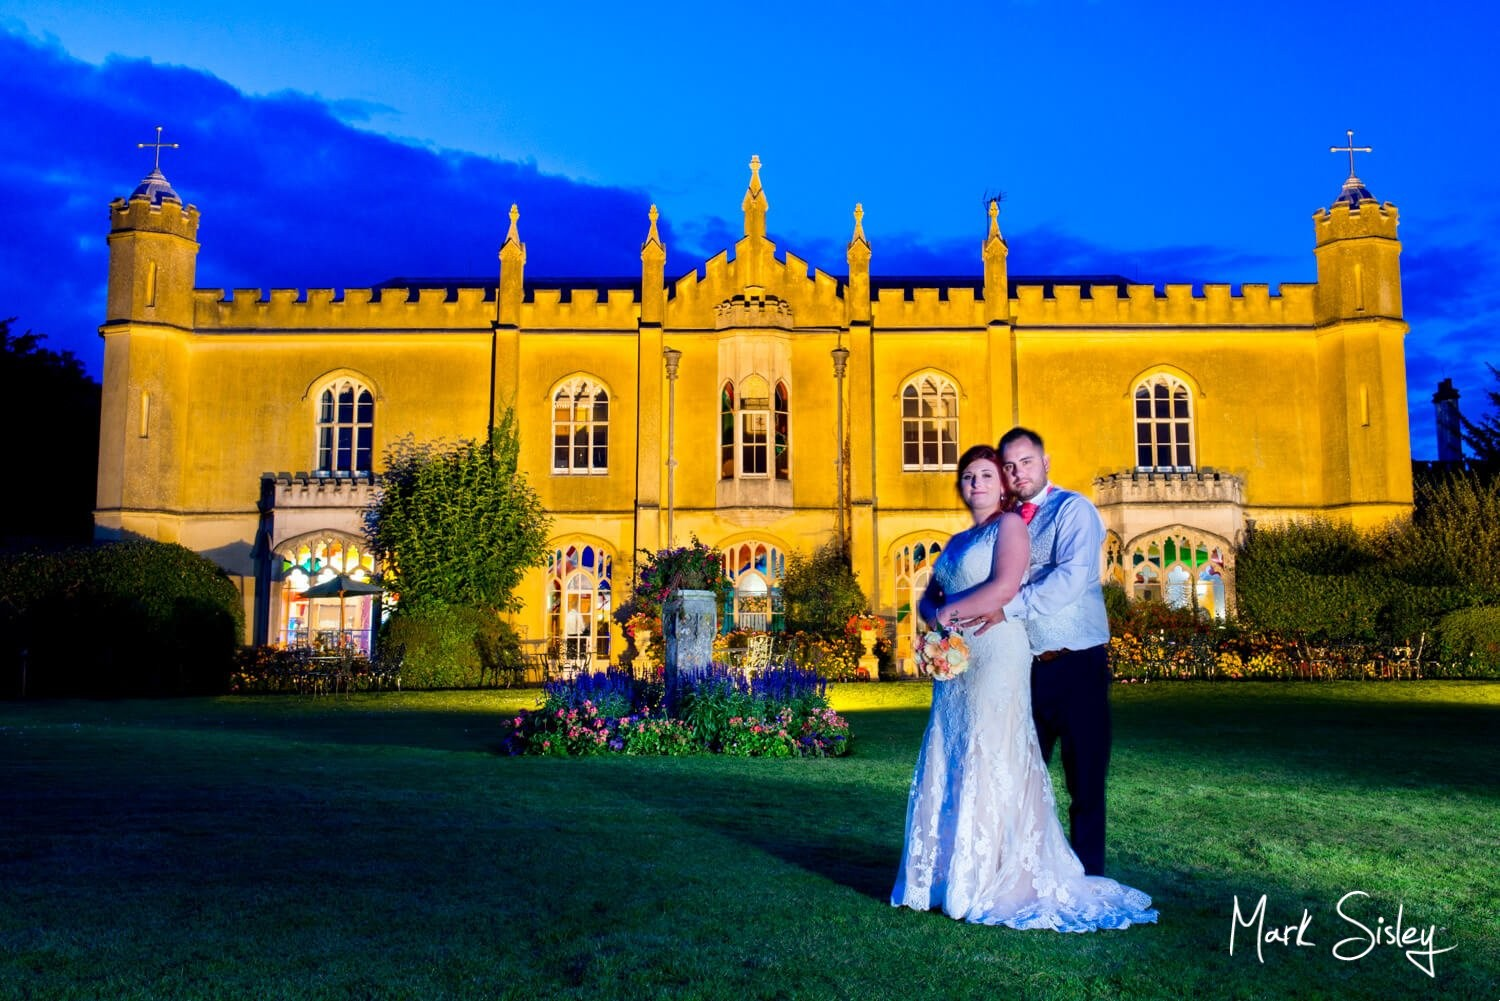 Missenden Abbey wedding celebrations comes to a close with this dramatic floodlit pose